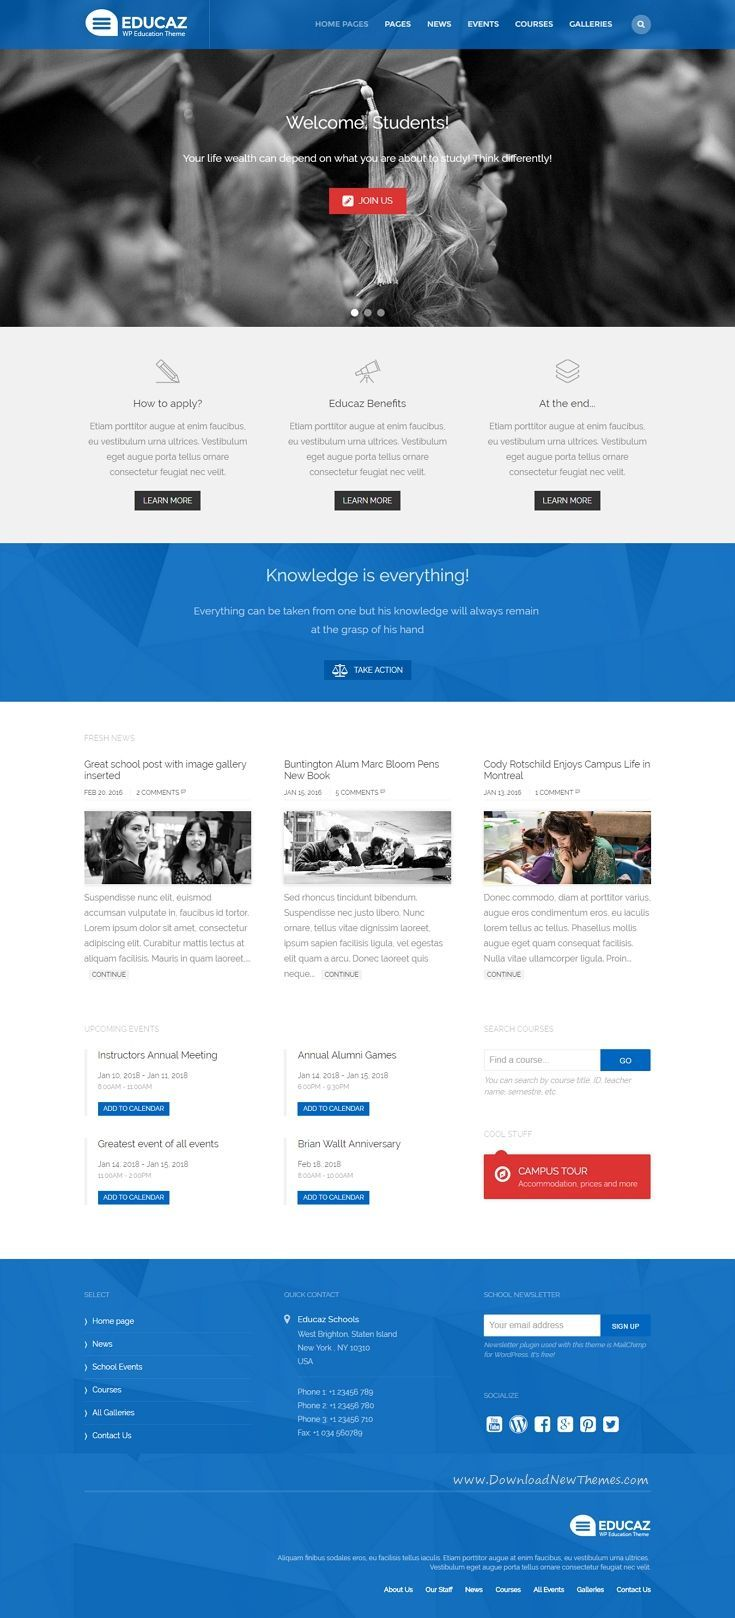 Educaz Responsive Wordpress Theme Is Simple And Clean Educational